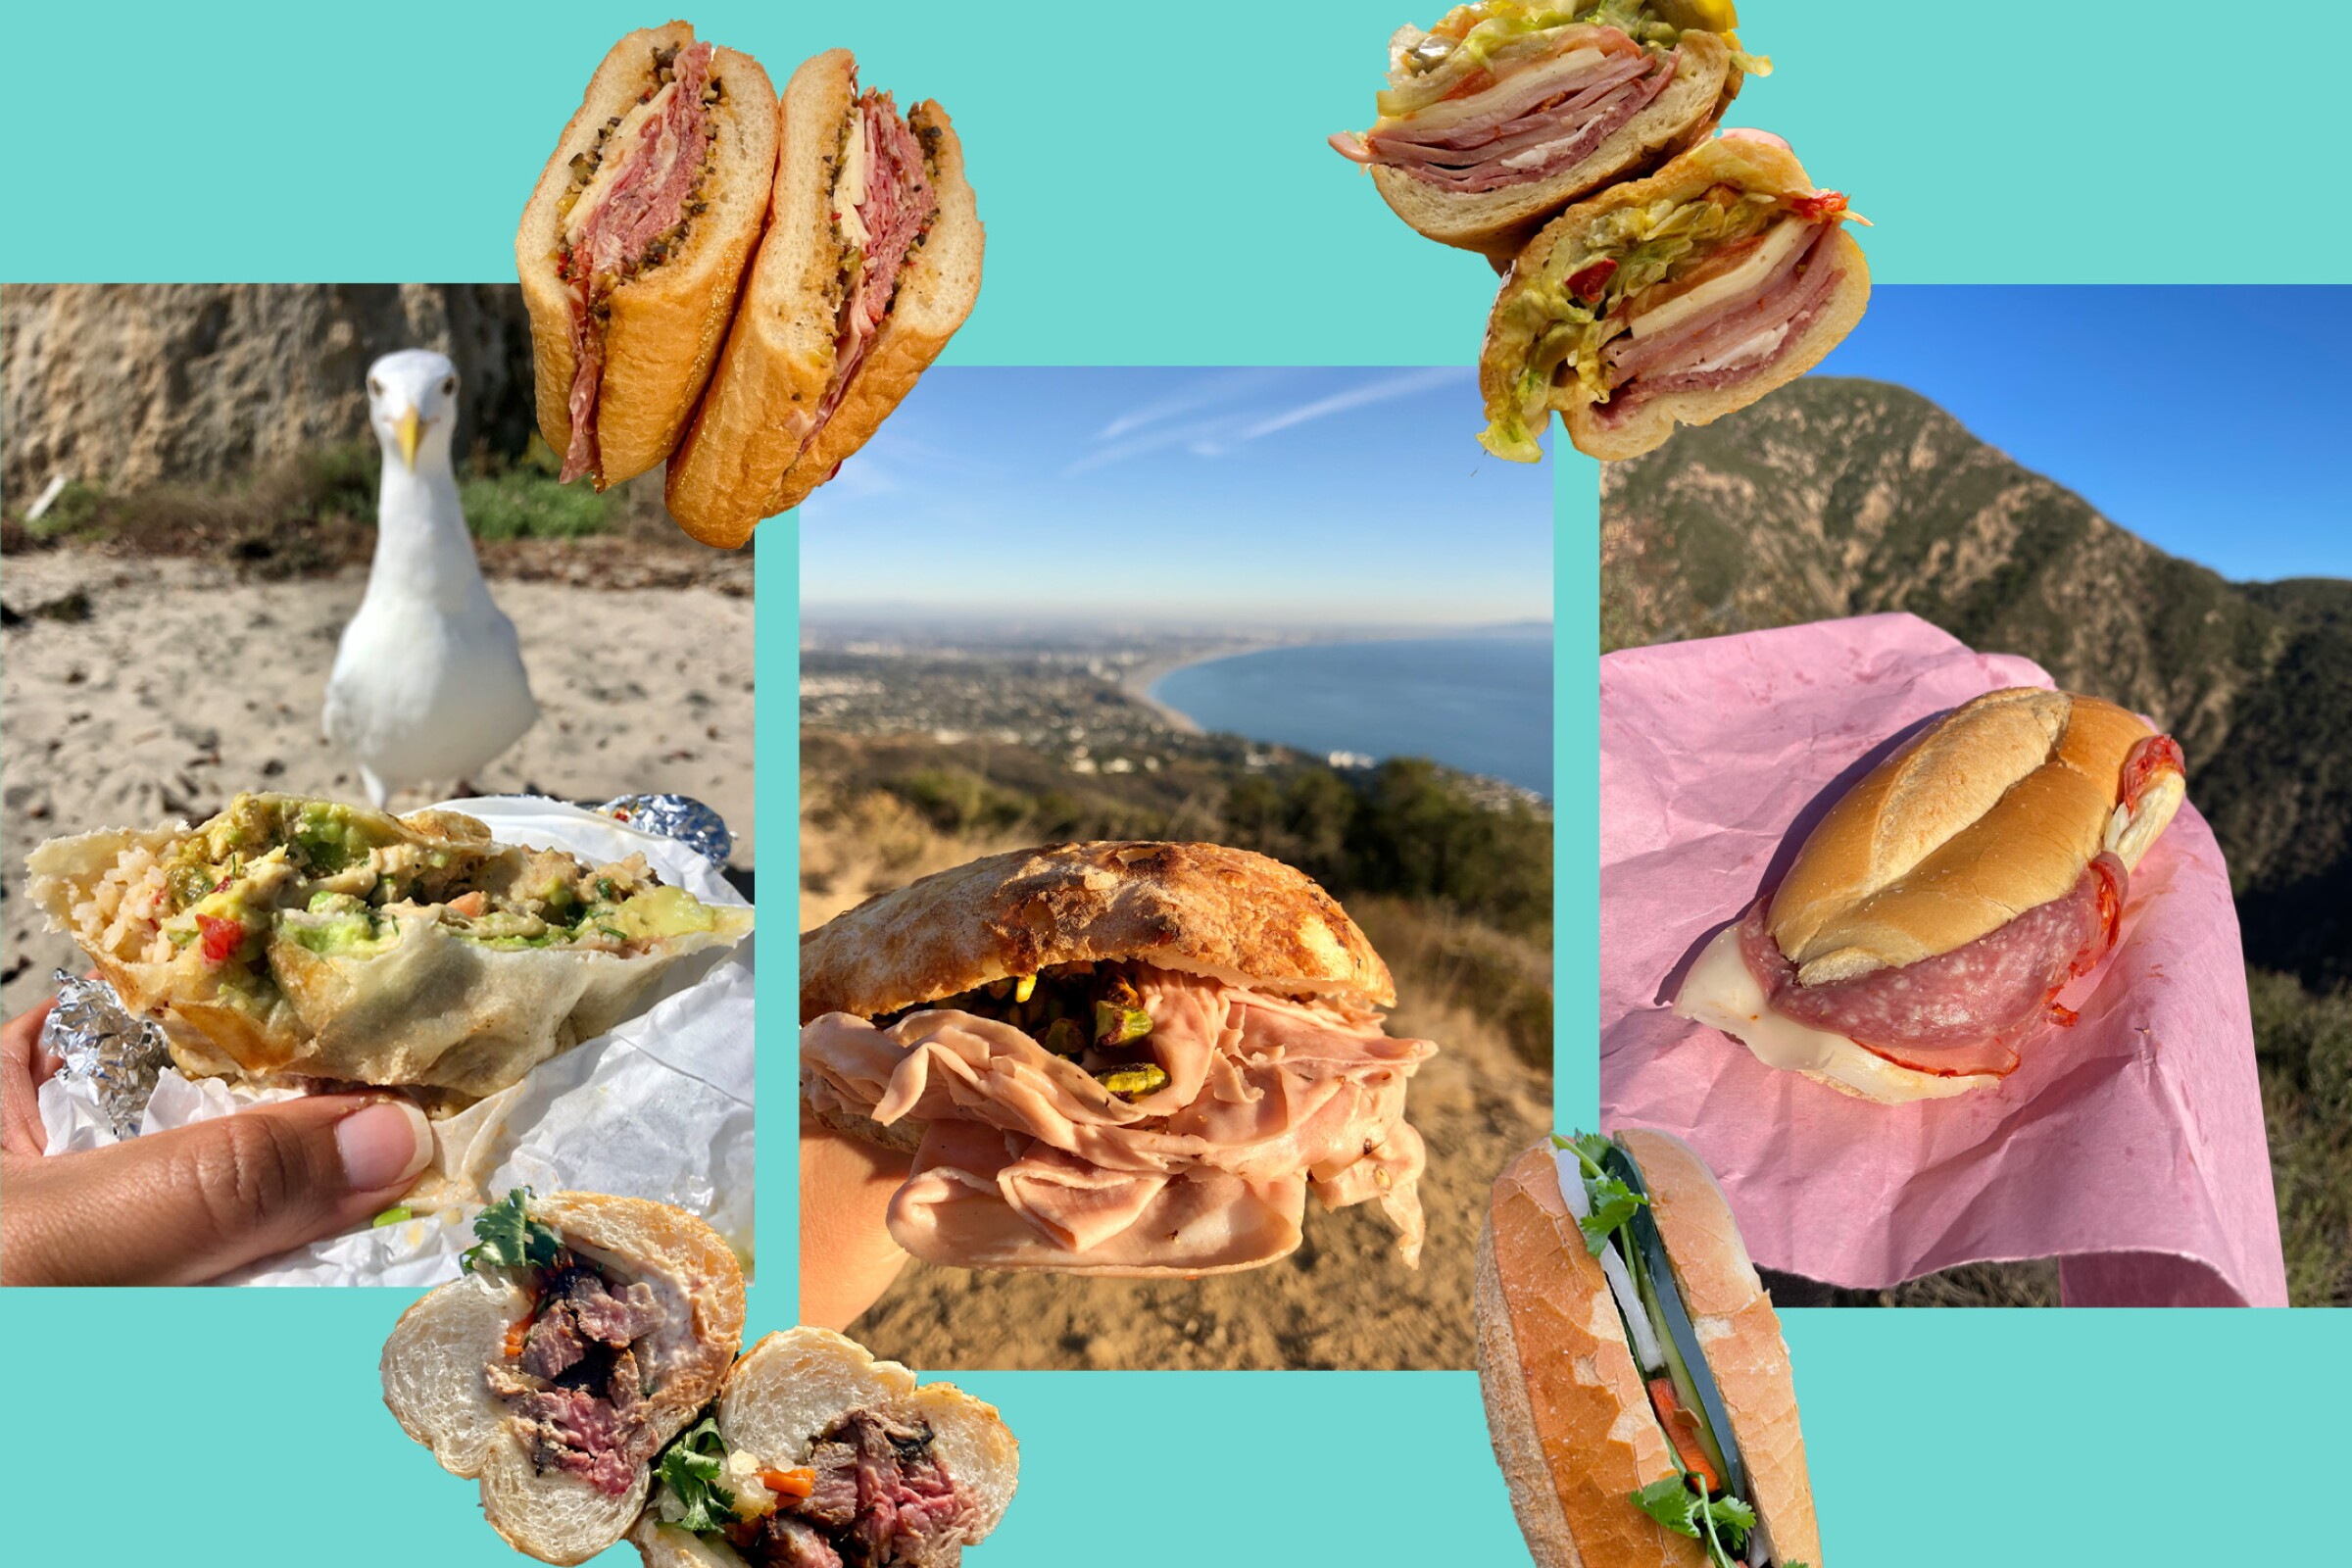 A photo collage of various sandwiches